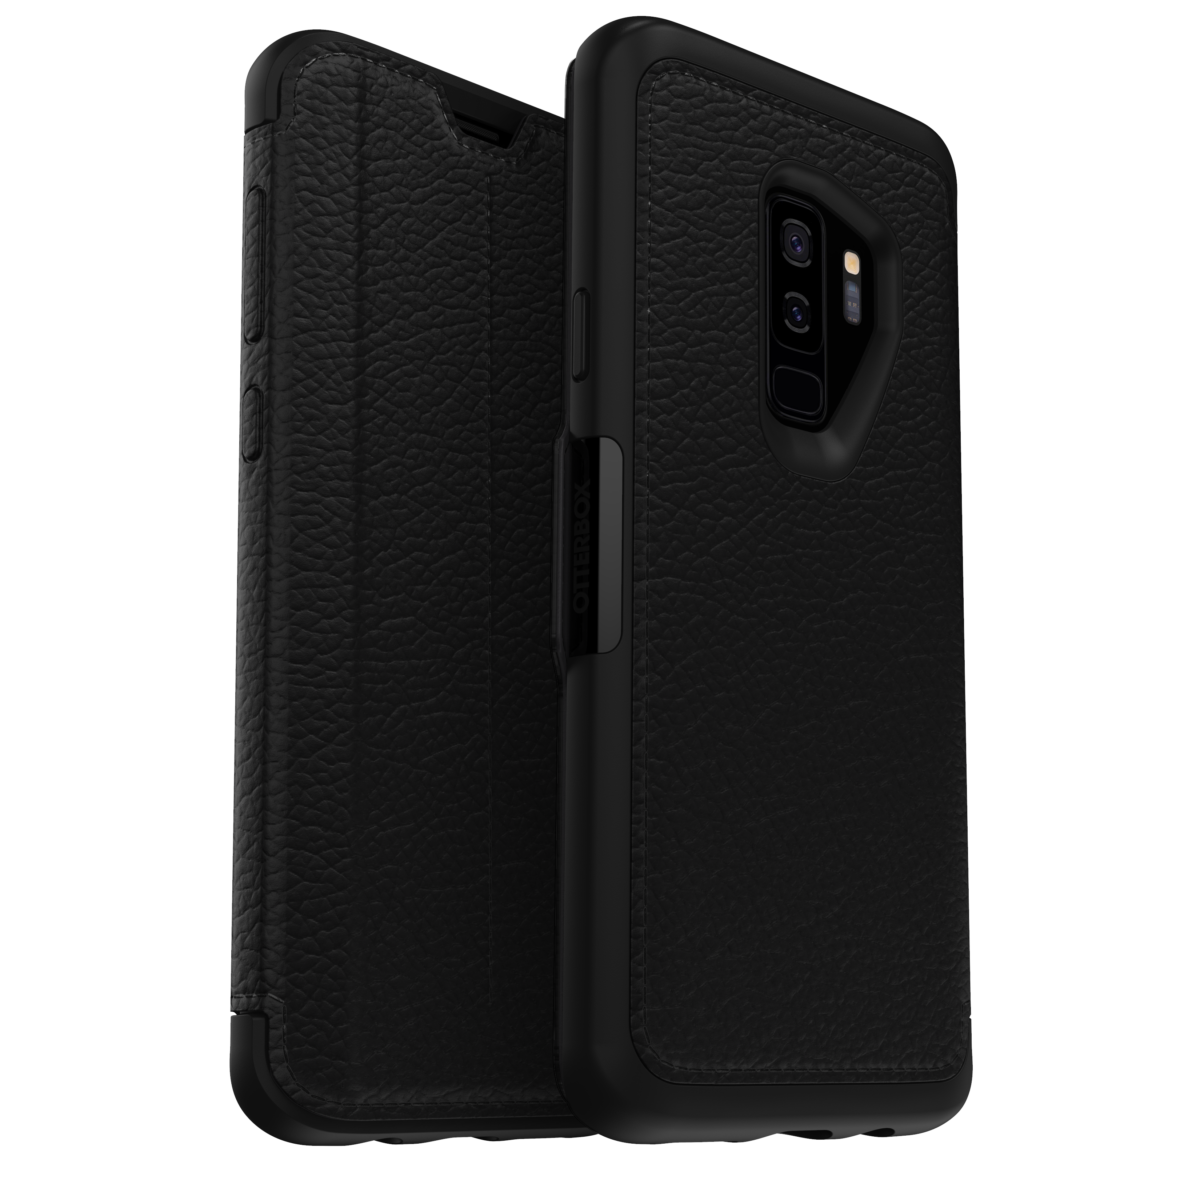 online store 9b51b c9f7d These Otterbox casings will protect your new Galaxy S9 and S9+ from ...